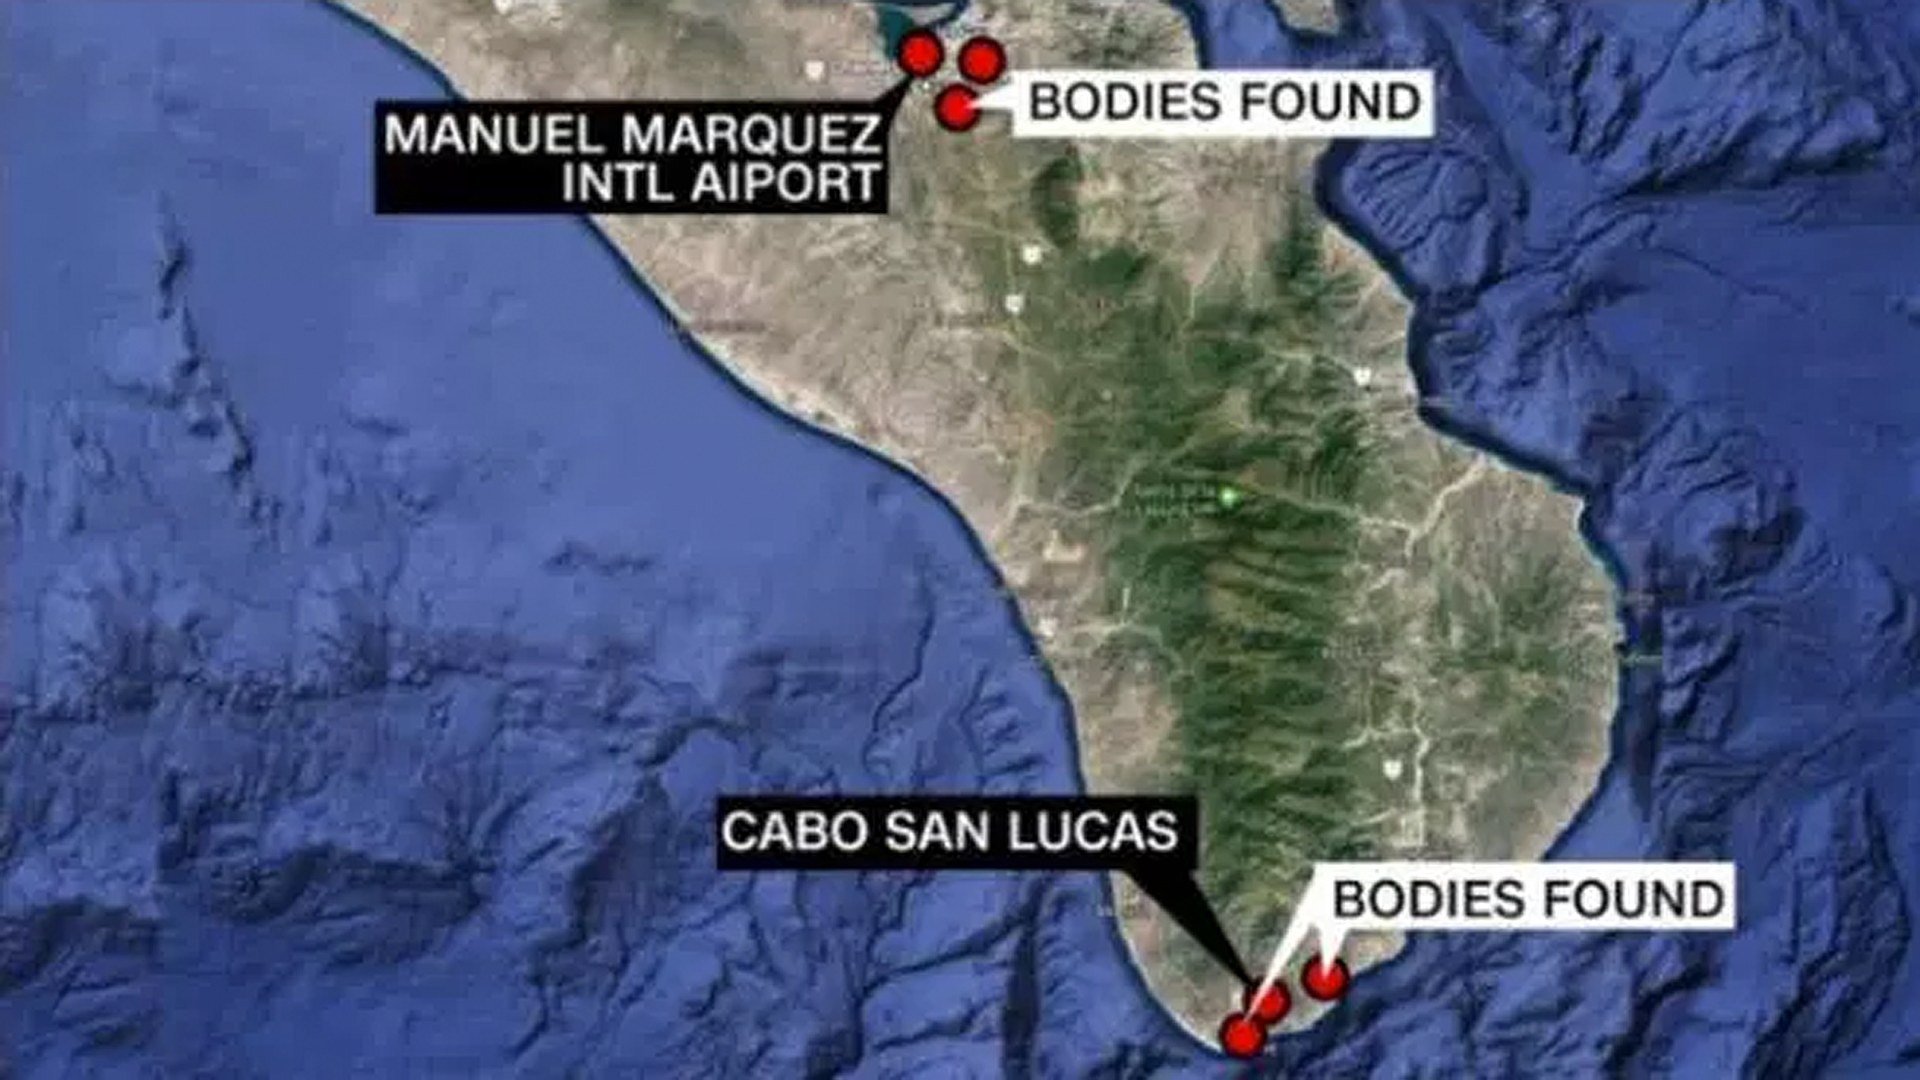 A map shows where bodies were found in Baja California Sur. (Credit: CNN)